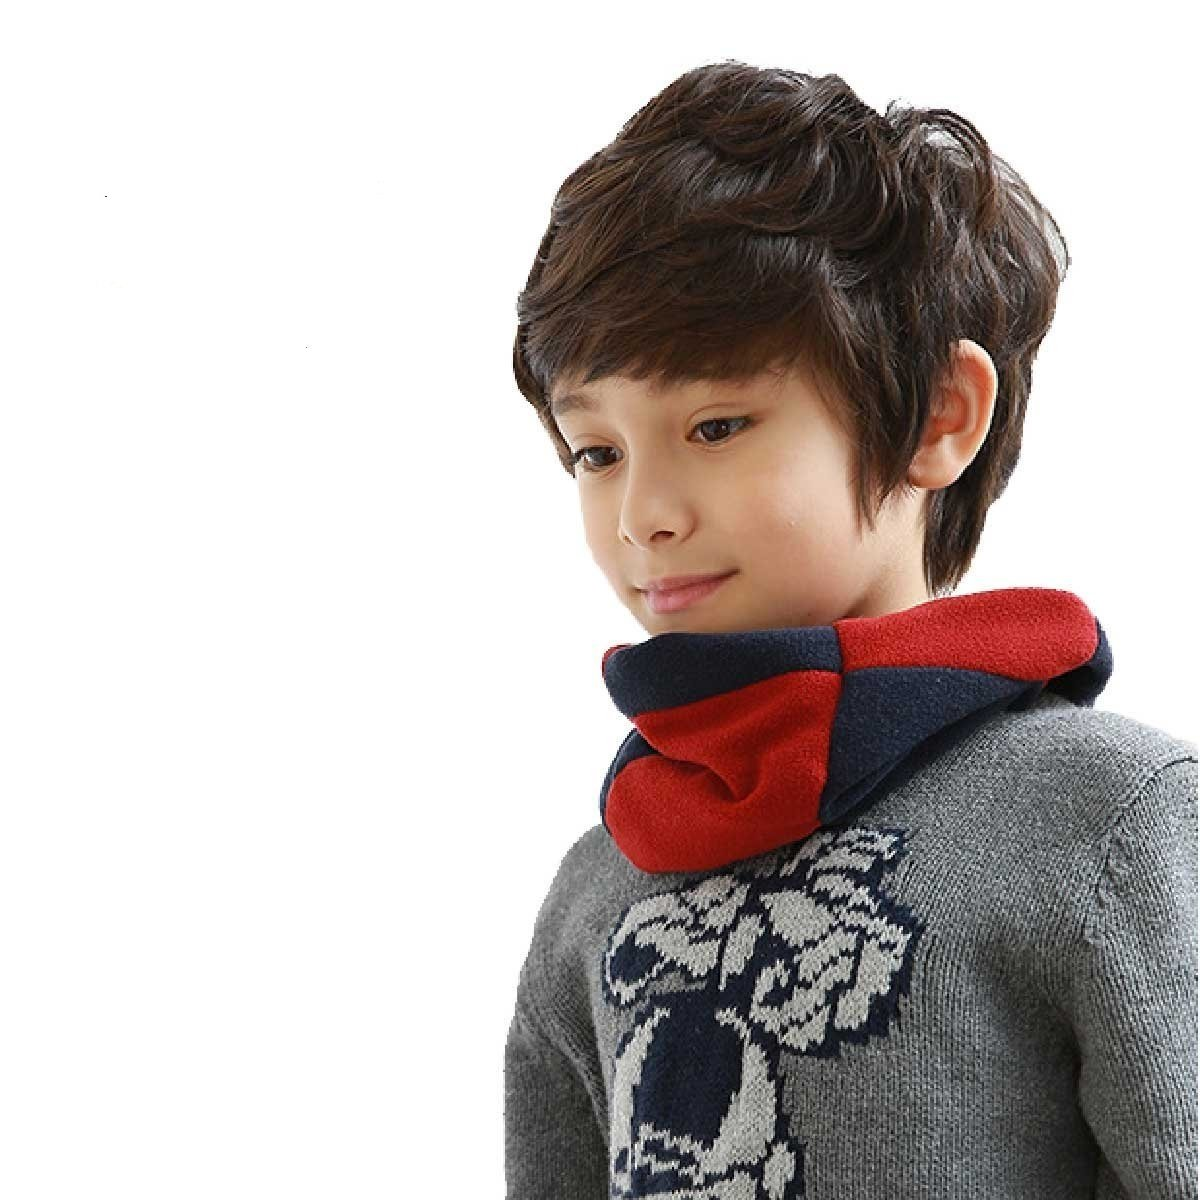 Triwonder Kids Winter Warm Scarf Thick Infinity Circle Loop Scarf Neck Warmer for 2-12 Years Old Boys Girls (Pink) OS1103PI